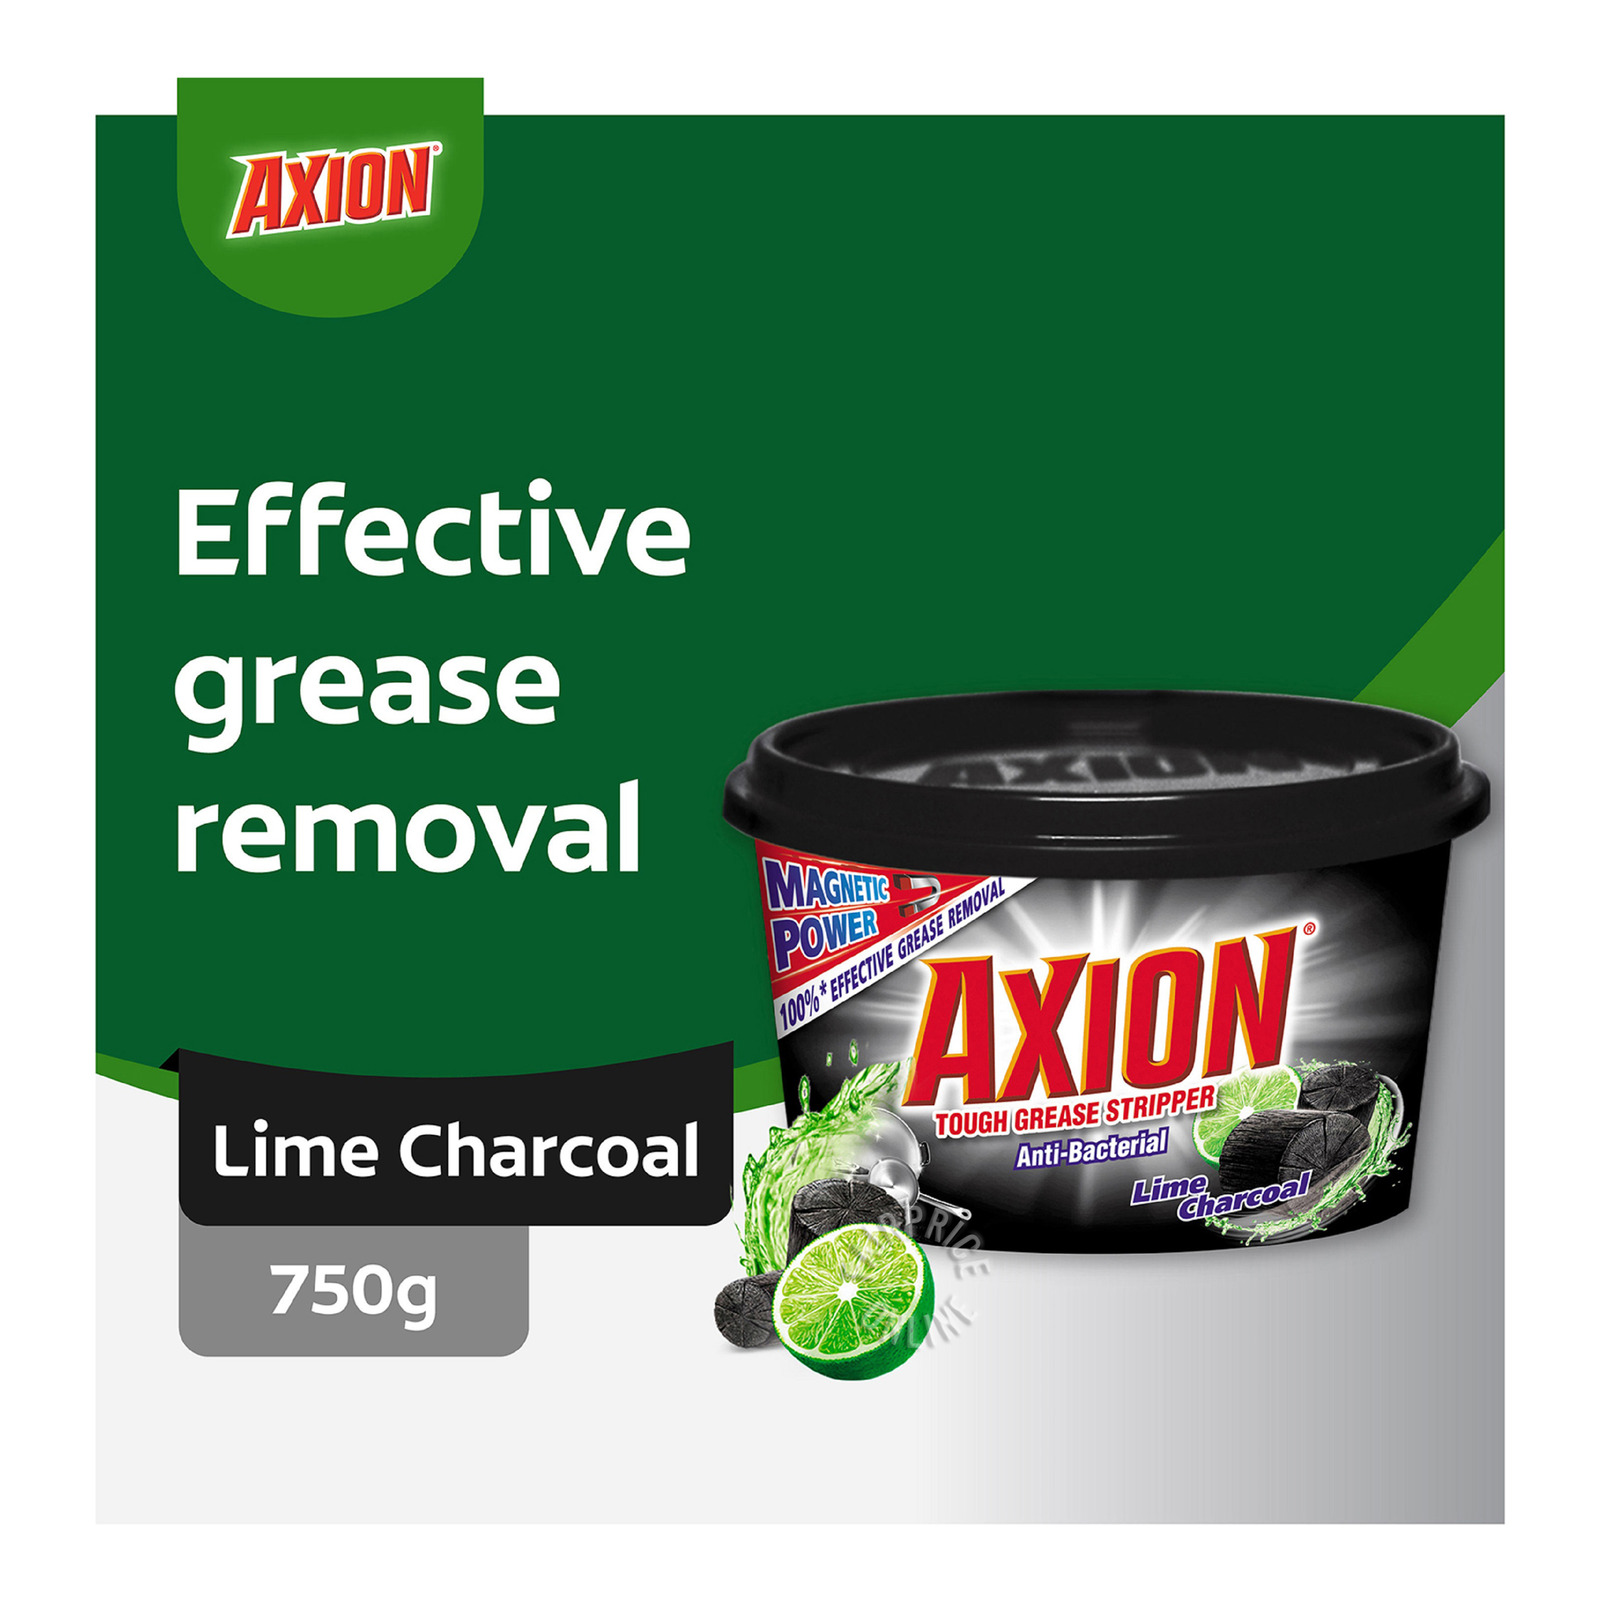 Axion Dishwash Paste - Lime Charcoal